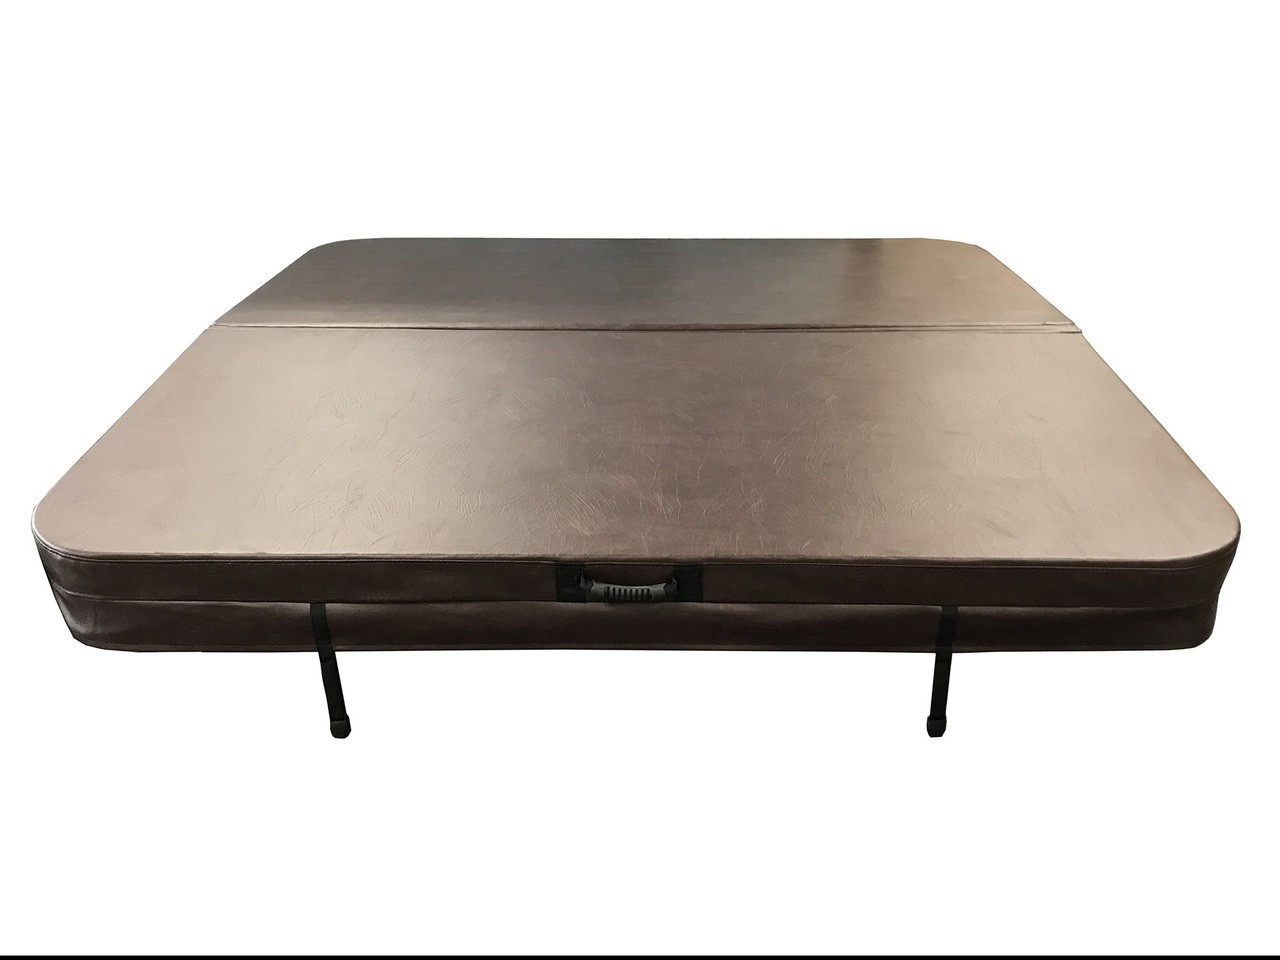 """6.5' x 6.5' - Hot Tub Cover for Master Spas - 78"""" x 78"""""""